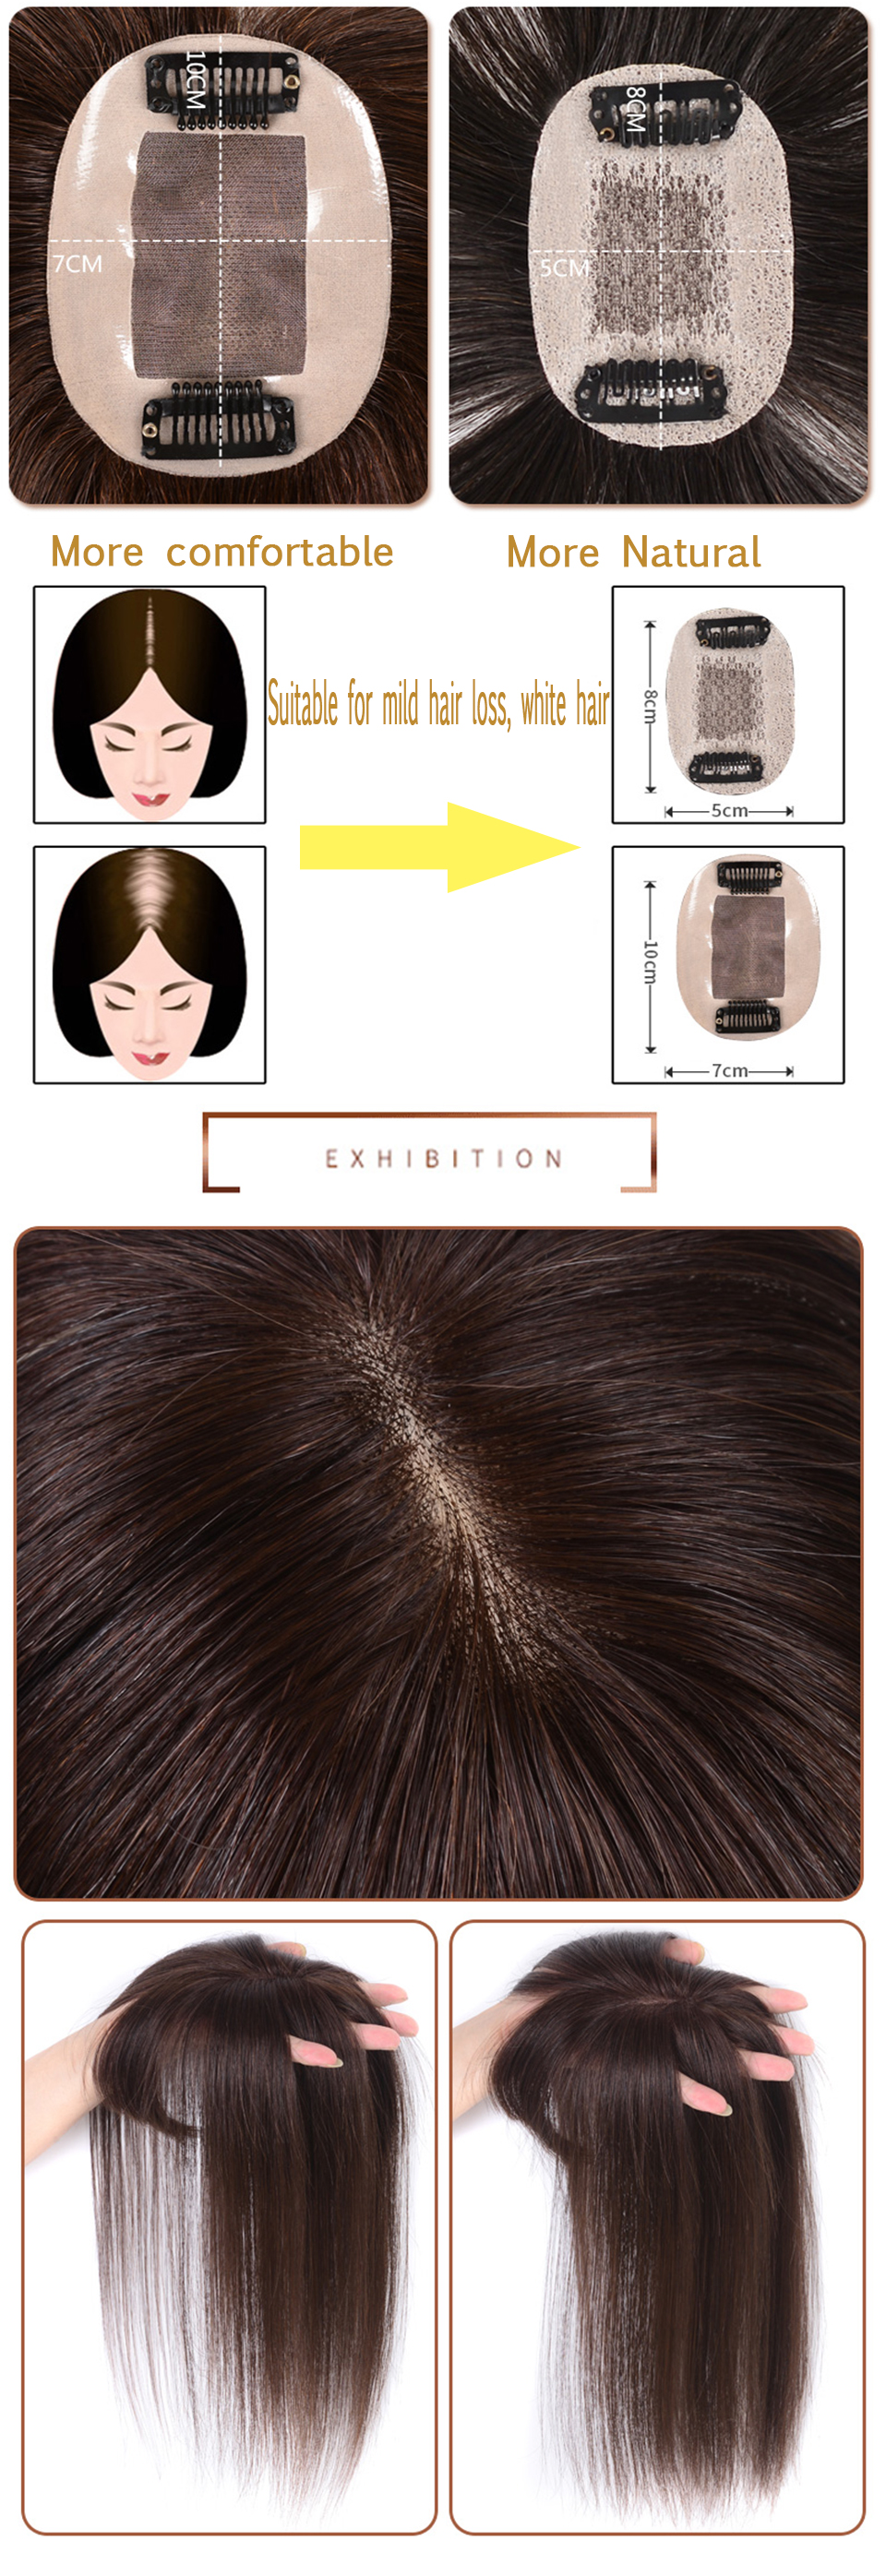 High Quality Natural Human Hair Different Sizes Invisible Seamless  Straight Hair Top Hair Clip for Adult Man/WomenHigh Quality Natural Human Hair Different Sizes Invisible Seamless  Straight Hair Top Hair Clip for Adult Man/Women